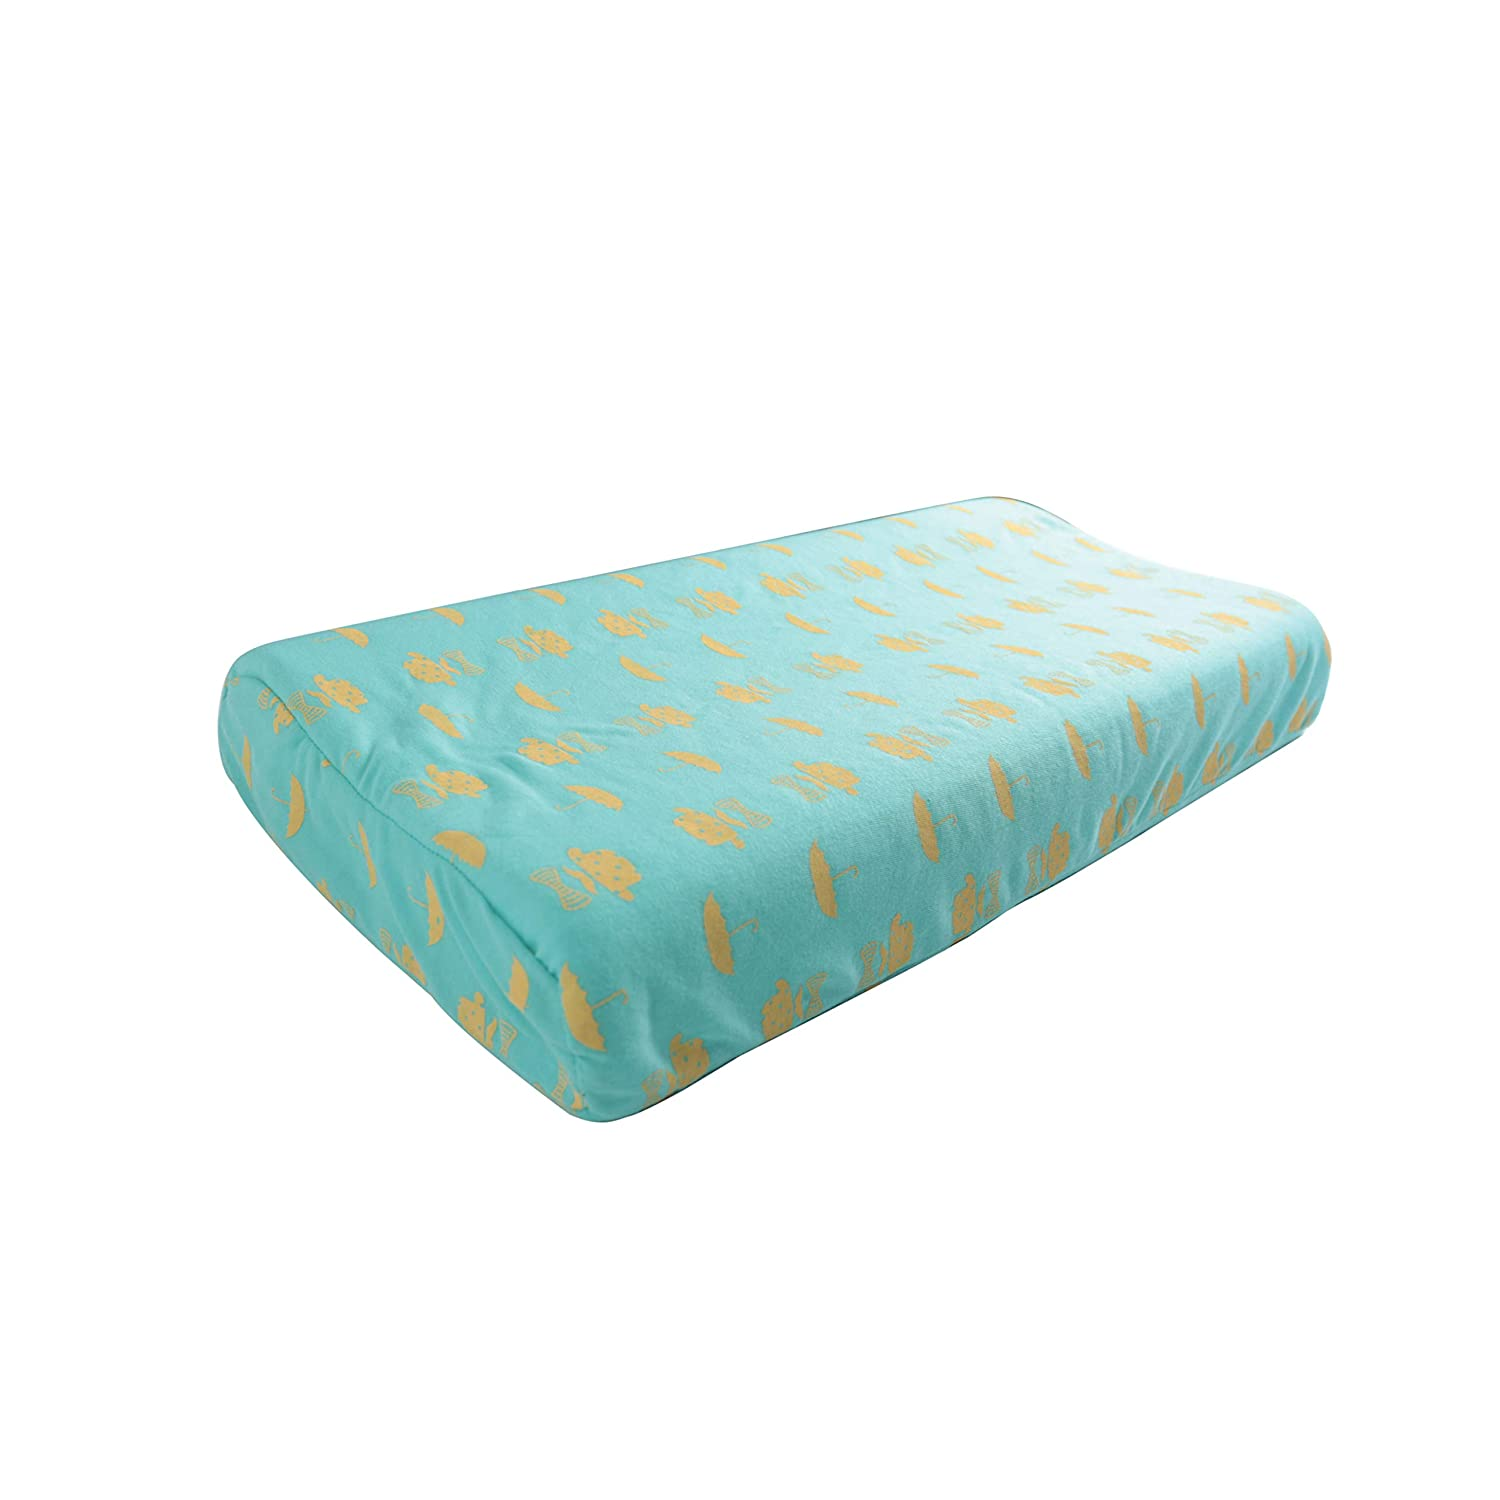 Speedy Harmony Latex Pillow 100/% Latex Bouncy Toddler//Child Pillow Designed for Toddlers Anatomy for Neck Pain Anti-mite Hypoallergenic 100/% Best Grade Thai Latex Blue Adjustable Pillow Height